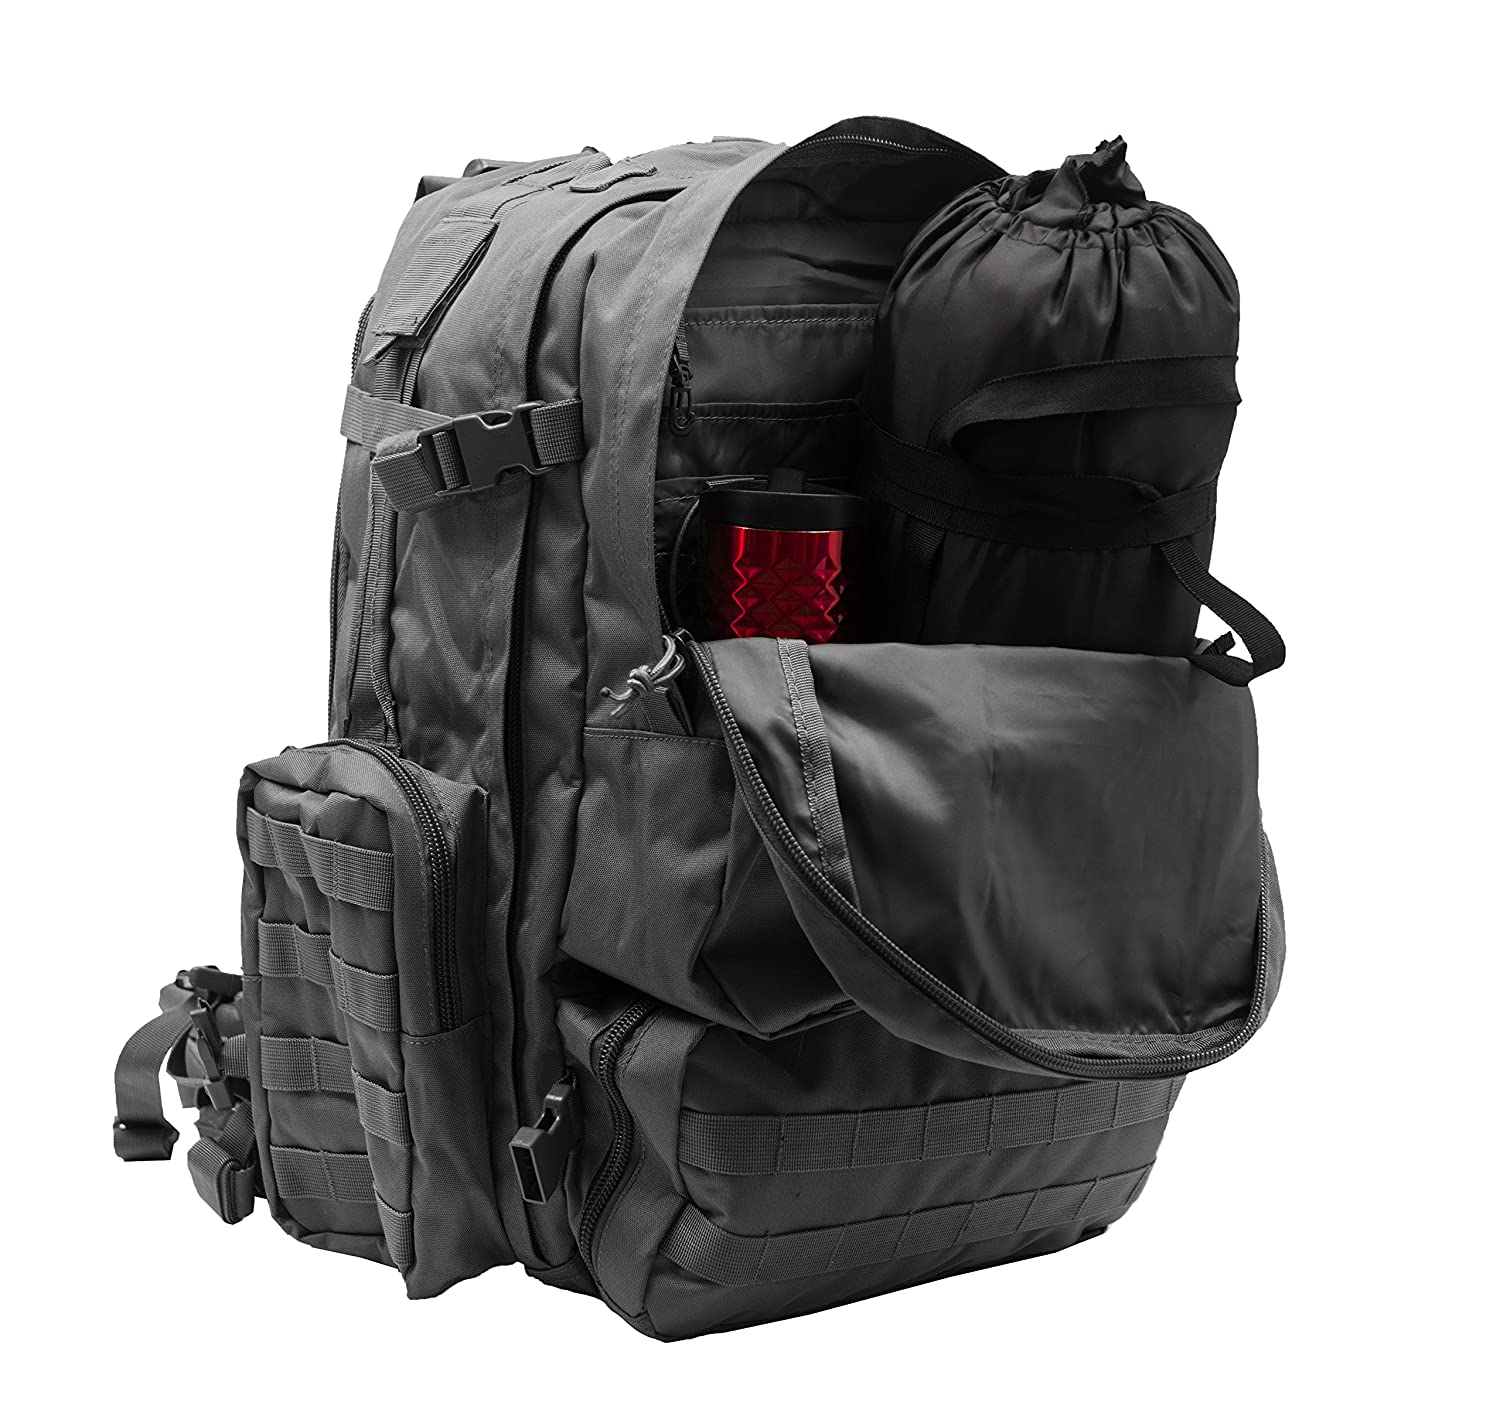 301700ecb798 Amazon.com   World Famous Sports Large 3 Day Tactical Backpack ...